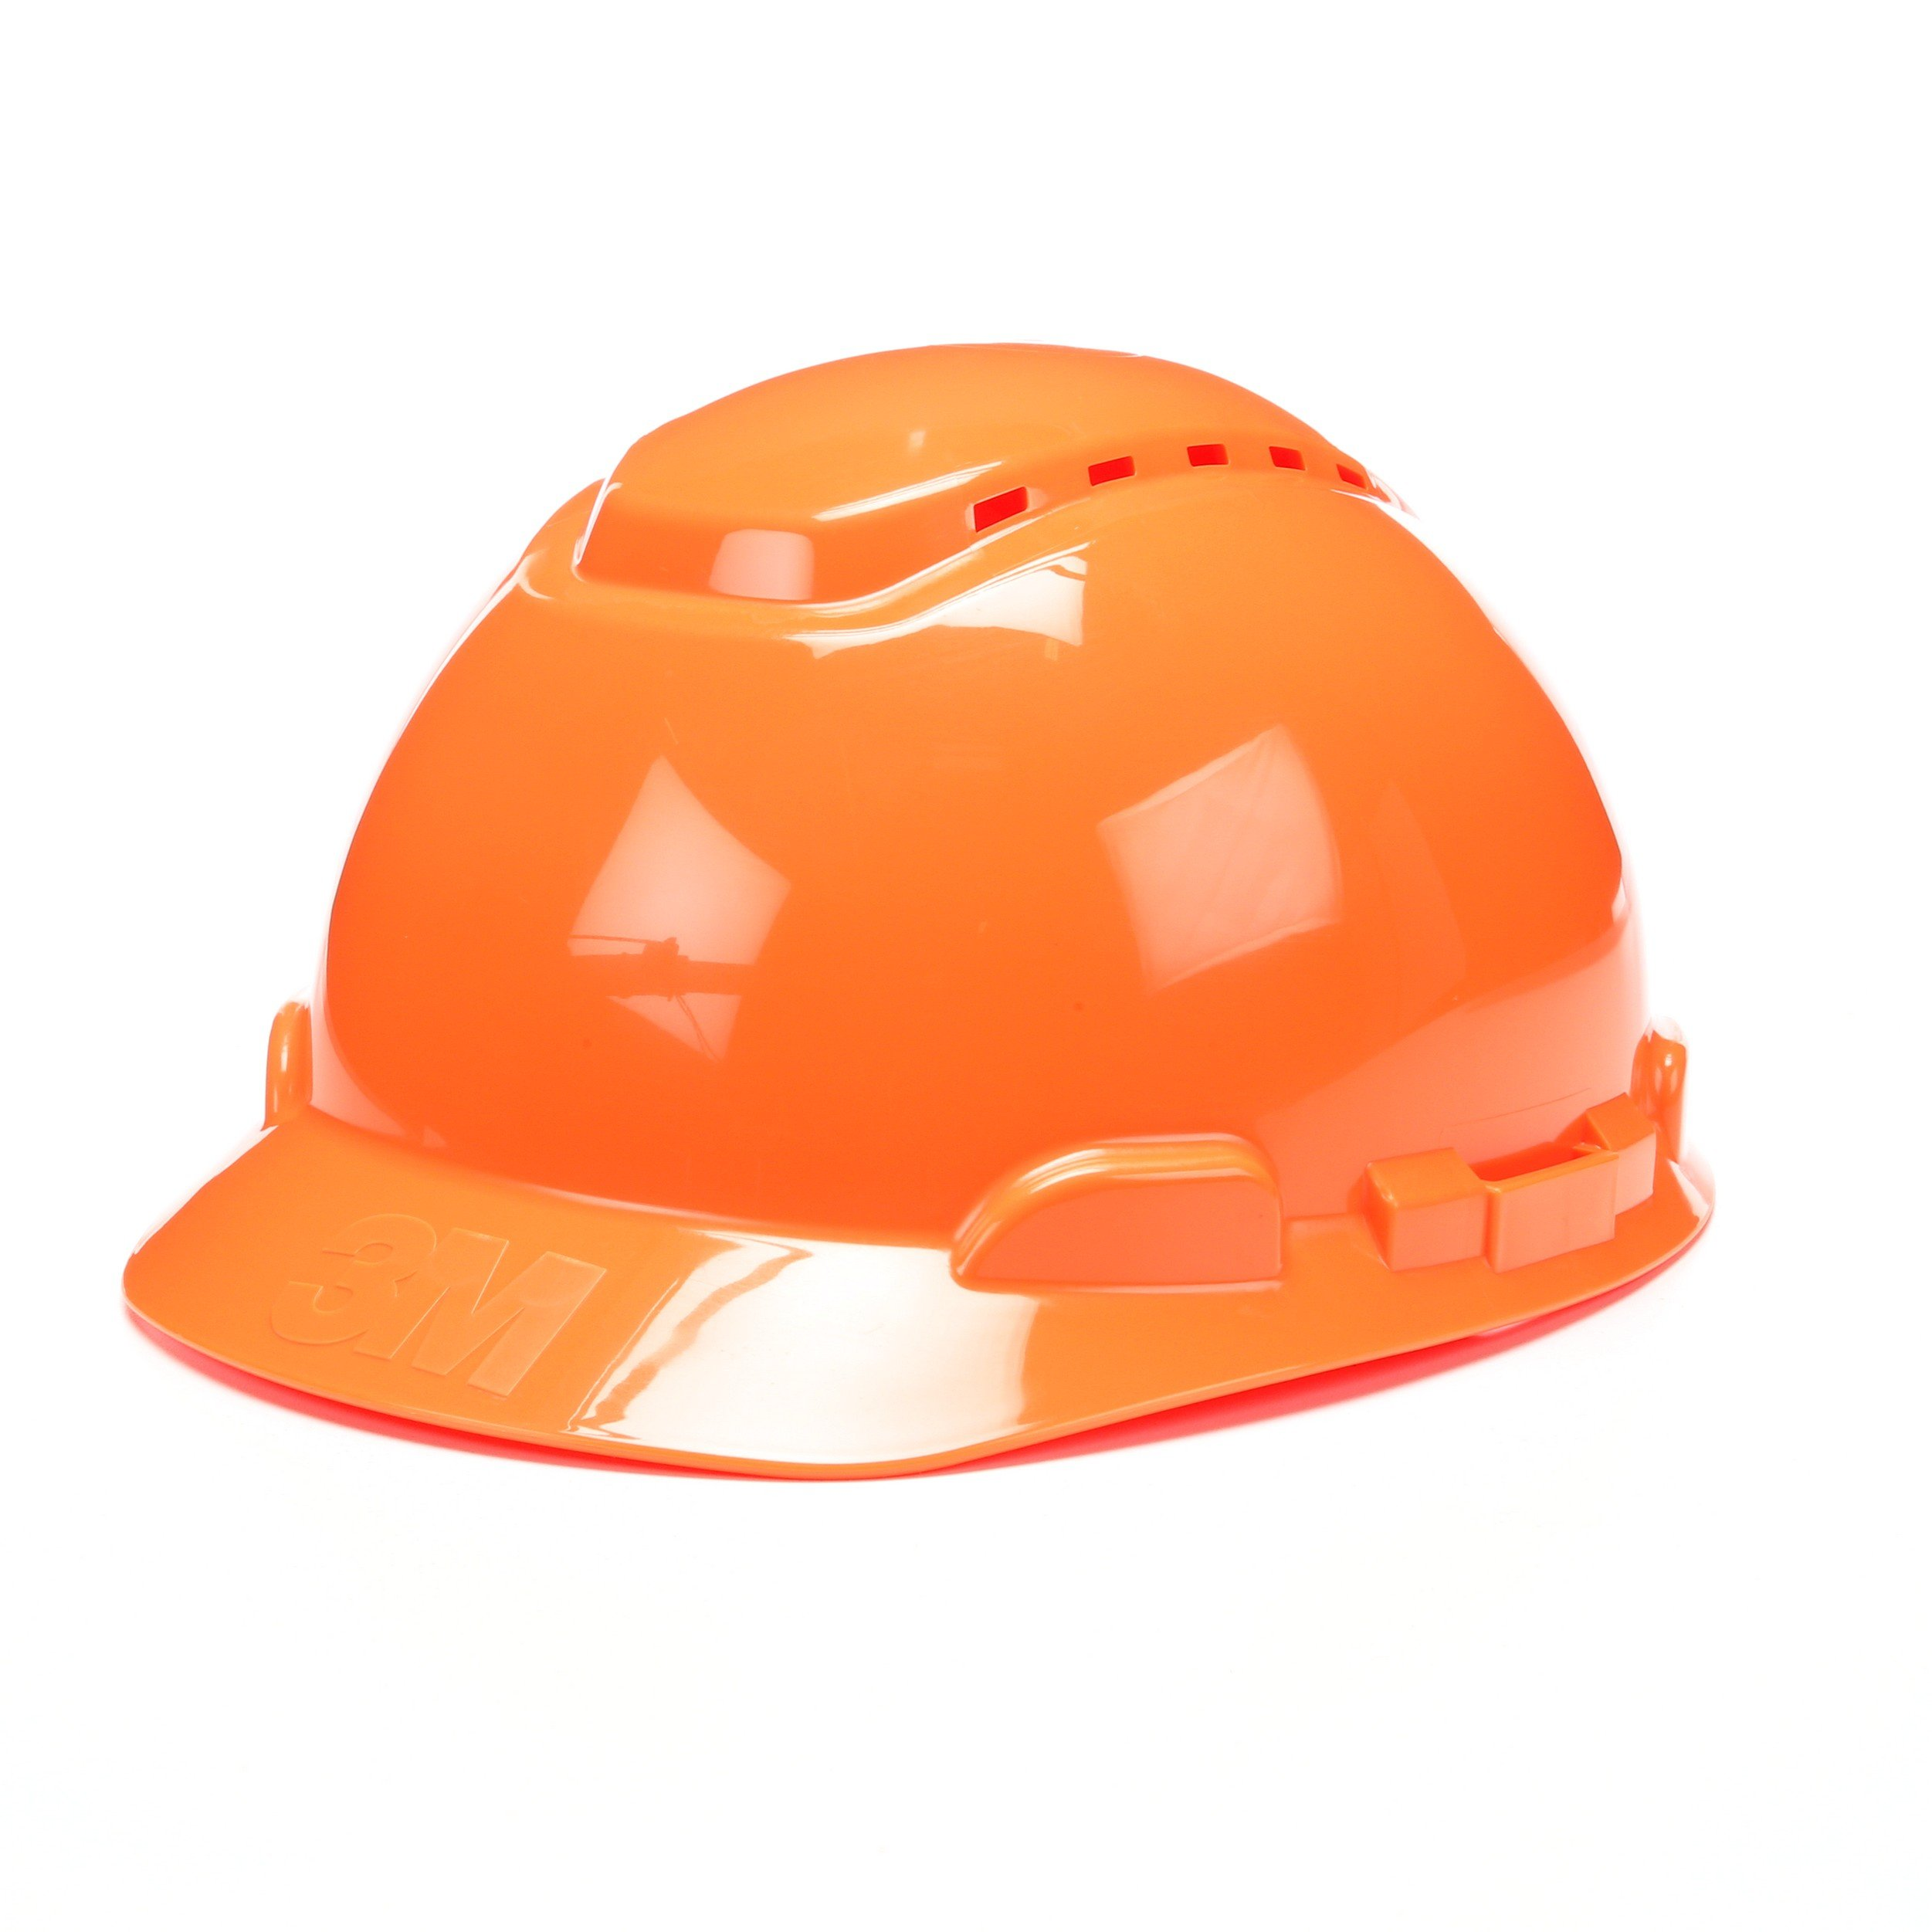 3M Hard Hat H-706V-UV, Orange, 4-Point Ratchet Suspension, Vented, with Uvicator